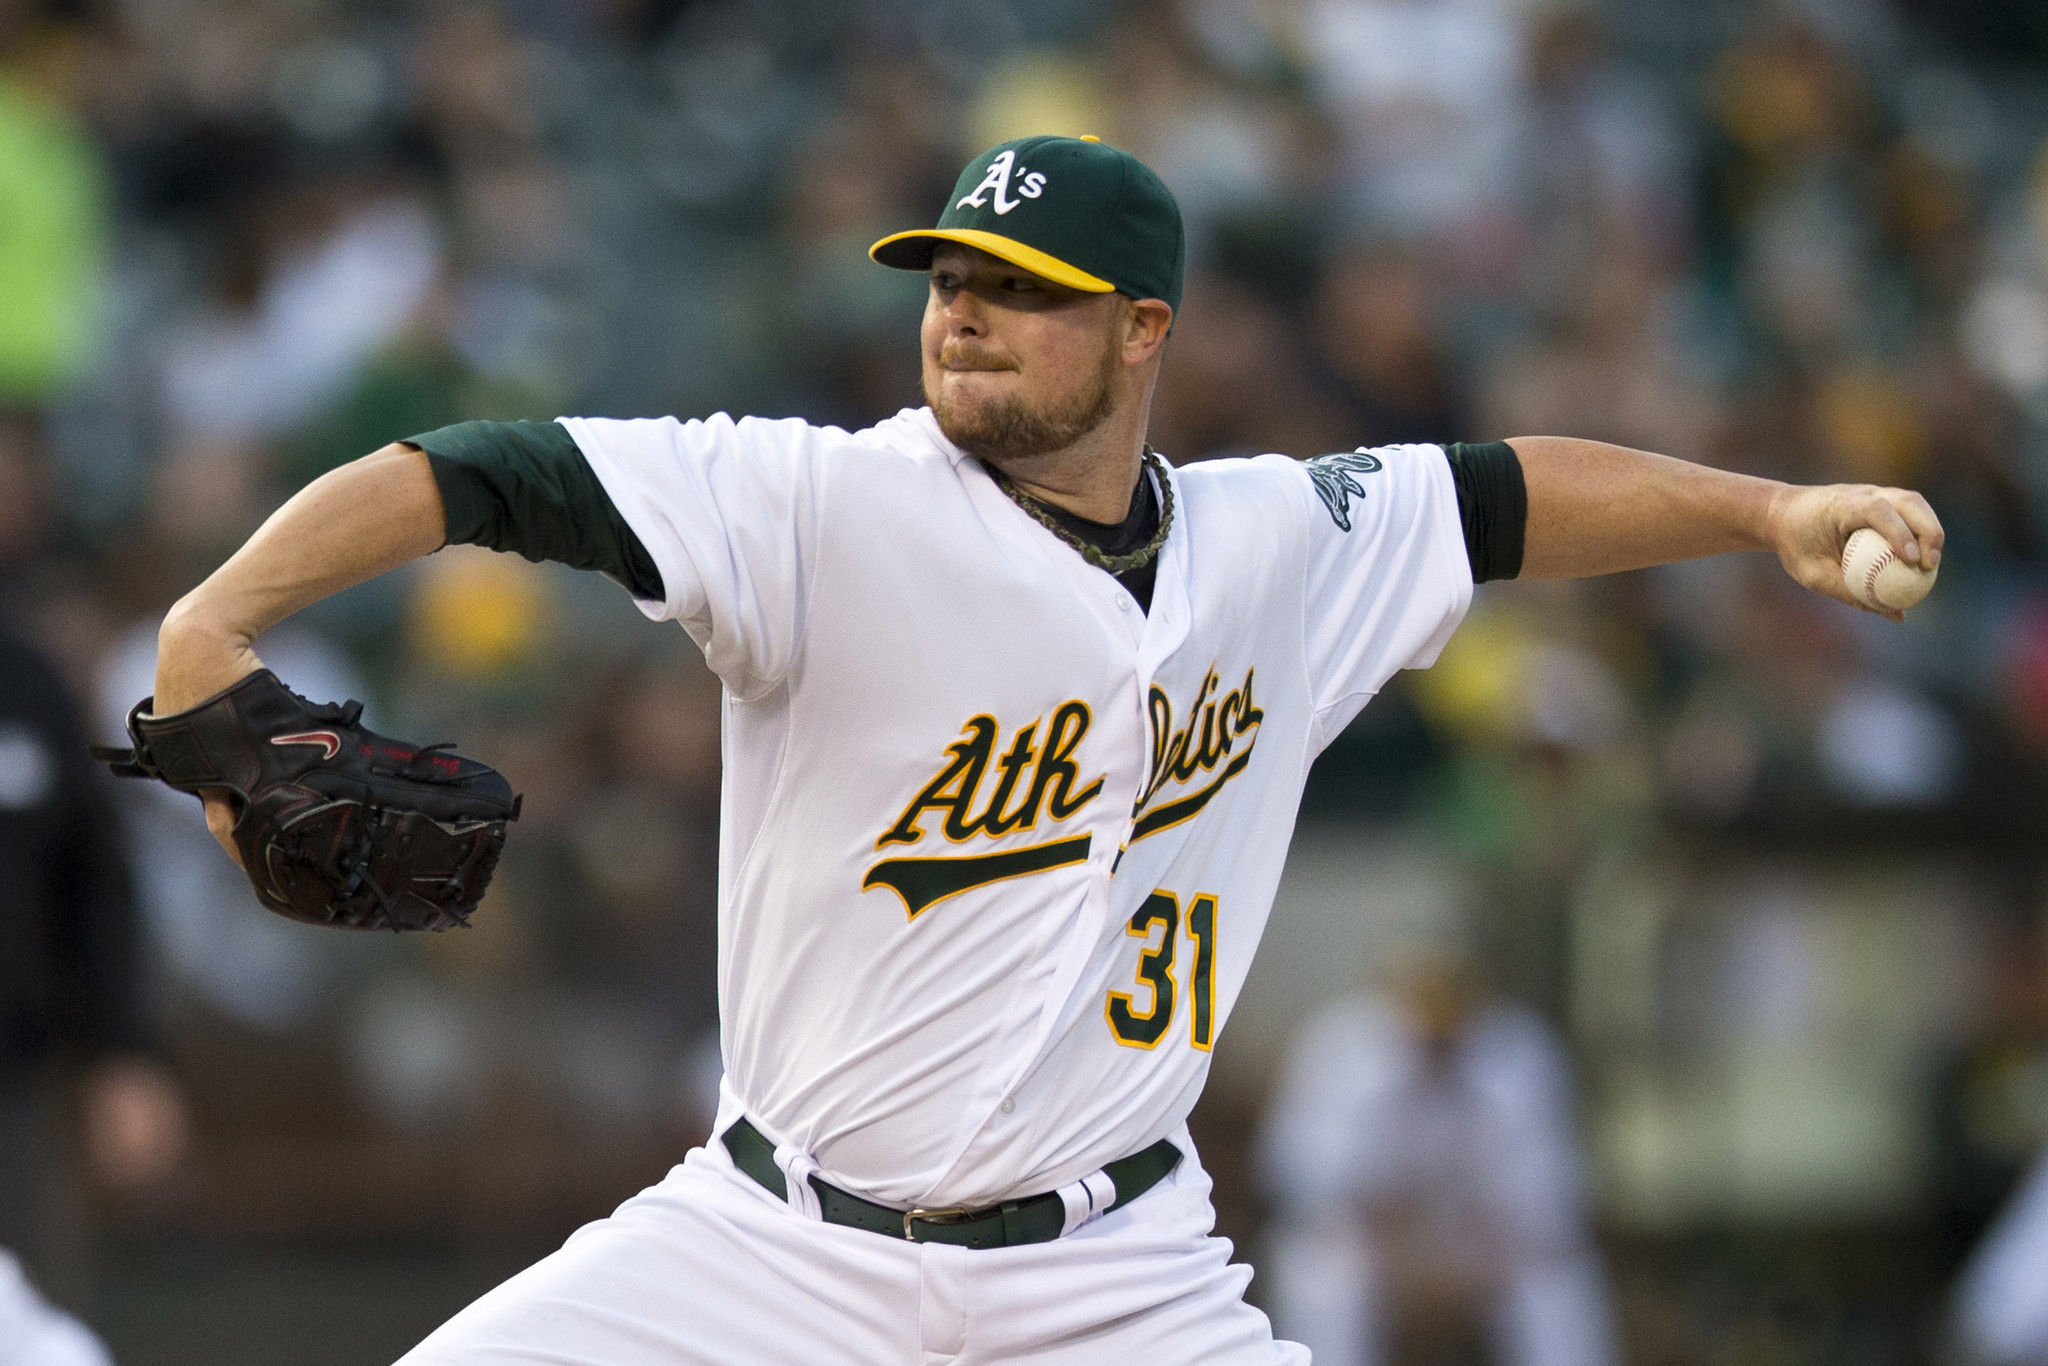 Jon Lester looms larger in wake of Red Sox's signings